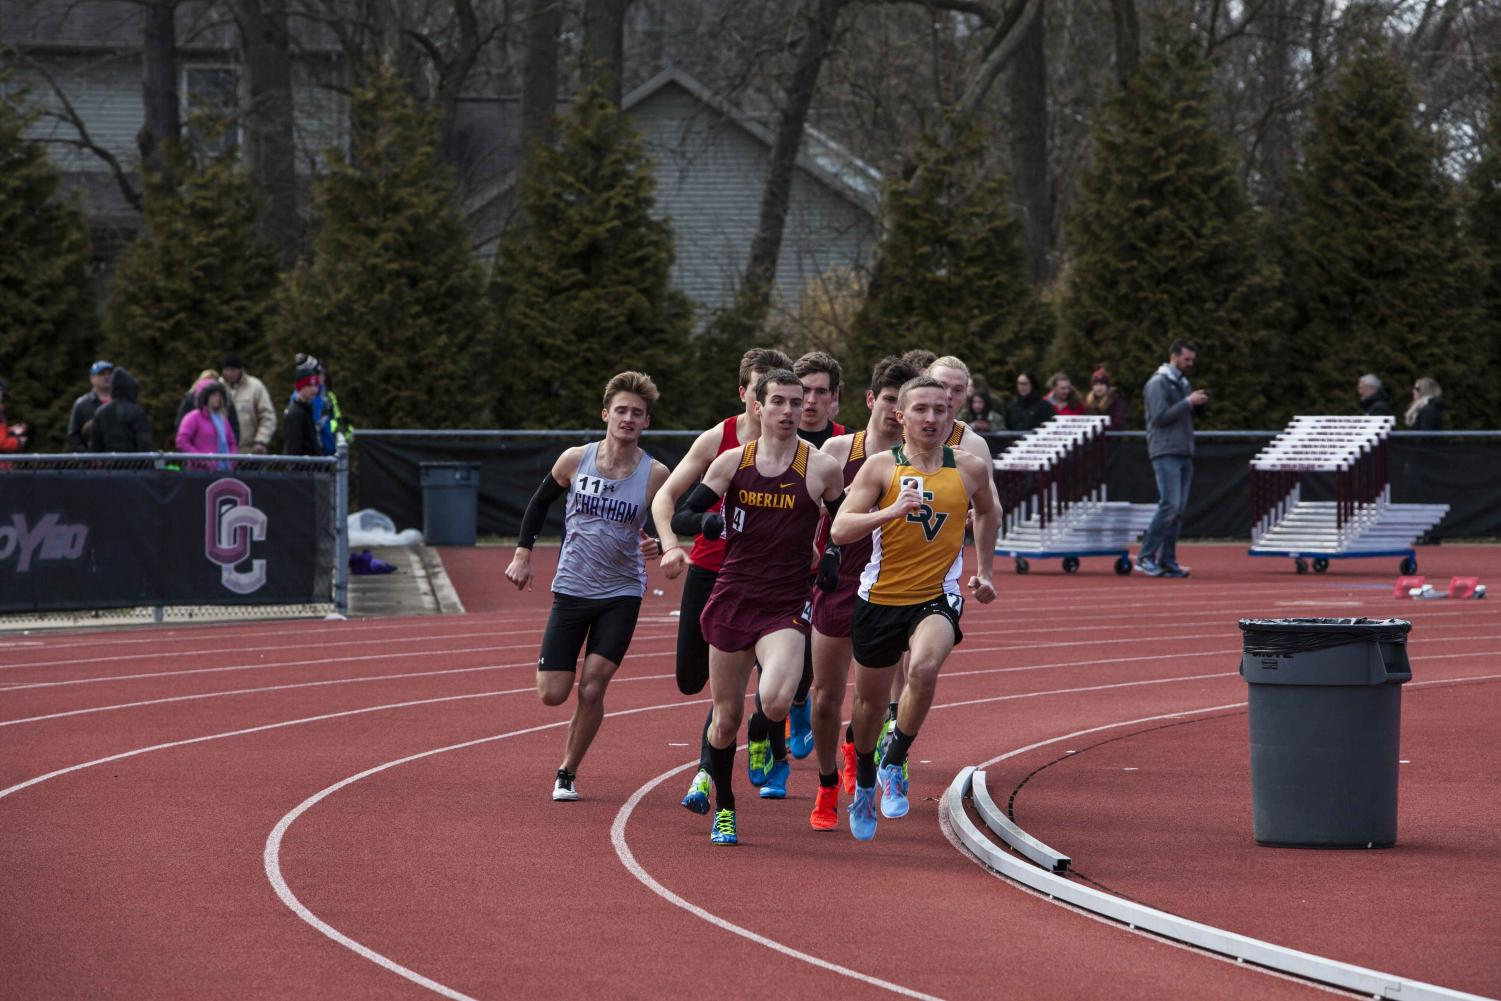 Distance runner Owen Mittenthal, who has enjoyed a successful senior season thus far. In the All-Ohio Championships Saturday, Mittenthal earned his team a point in the 1,500-meter, finishing the race at 4:07.00.